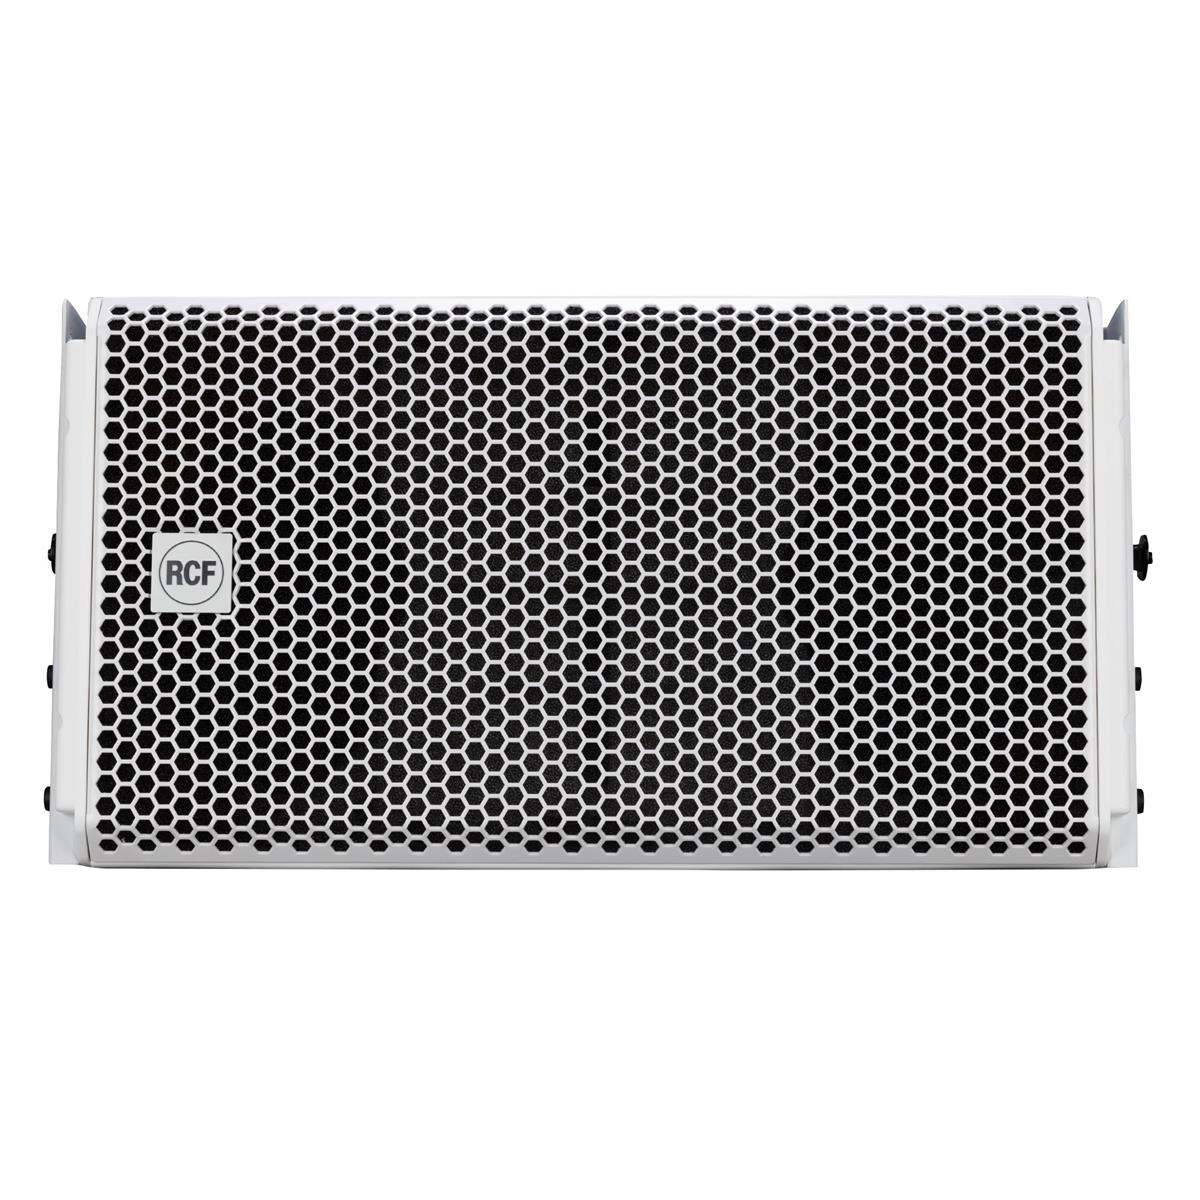 RCF 2x8in + 3in, 1100Wrms, 2200 Wpeak, RDNet, active array m